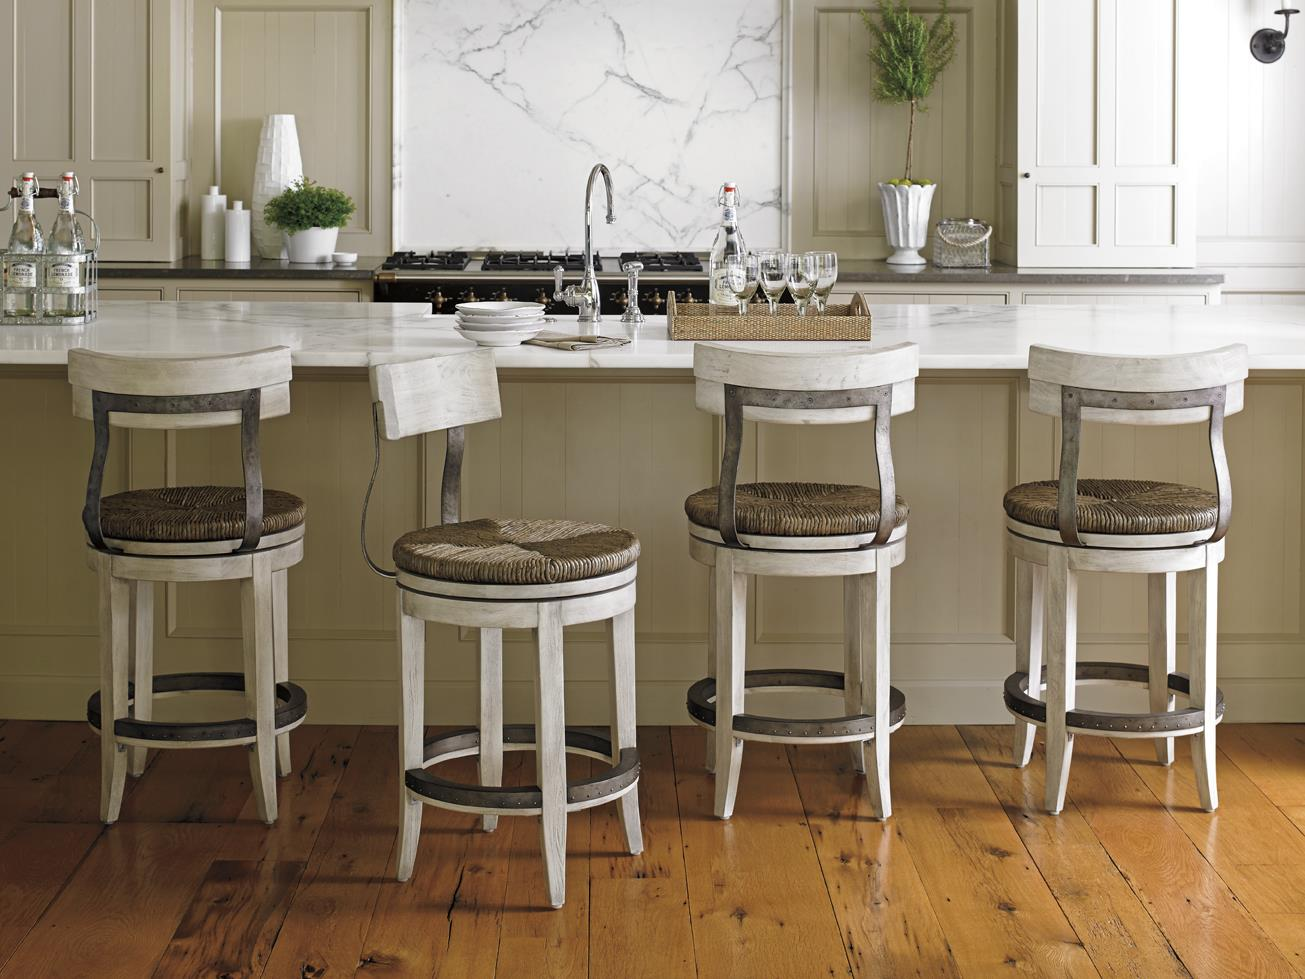 Lexington Oyster Bay Merrick Swivel Counter Stool With